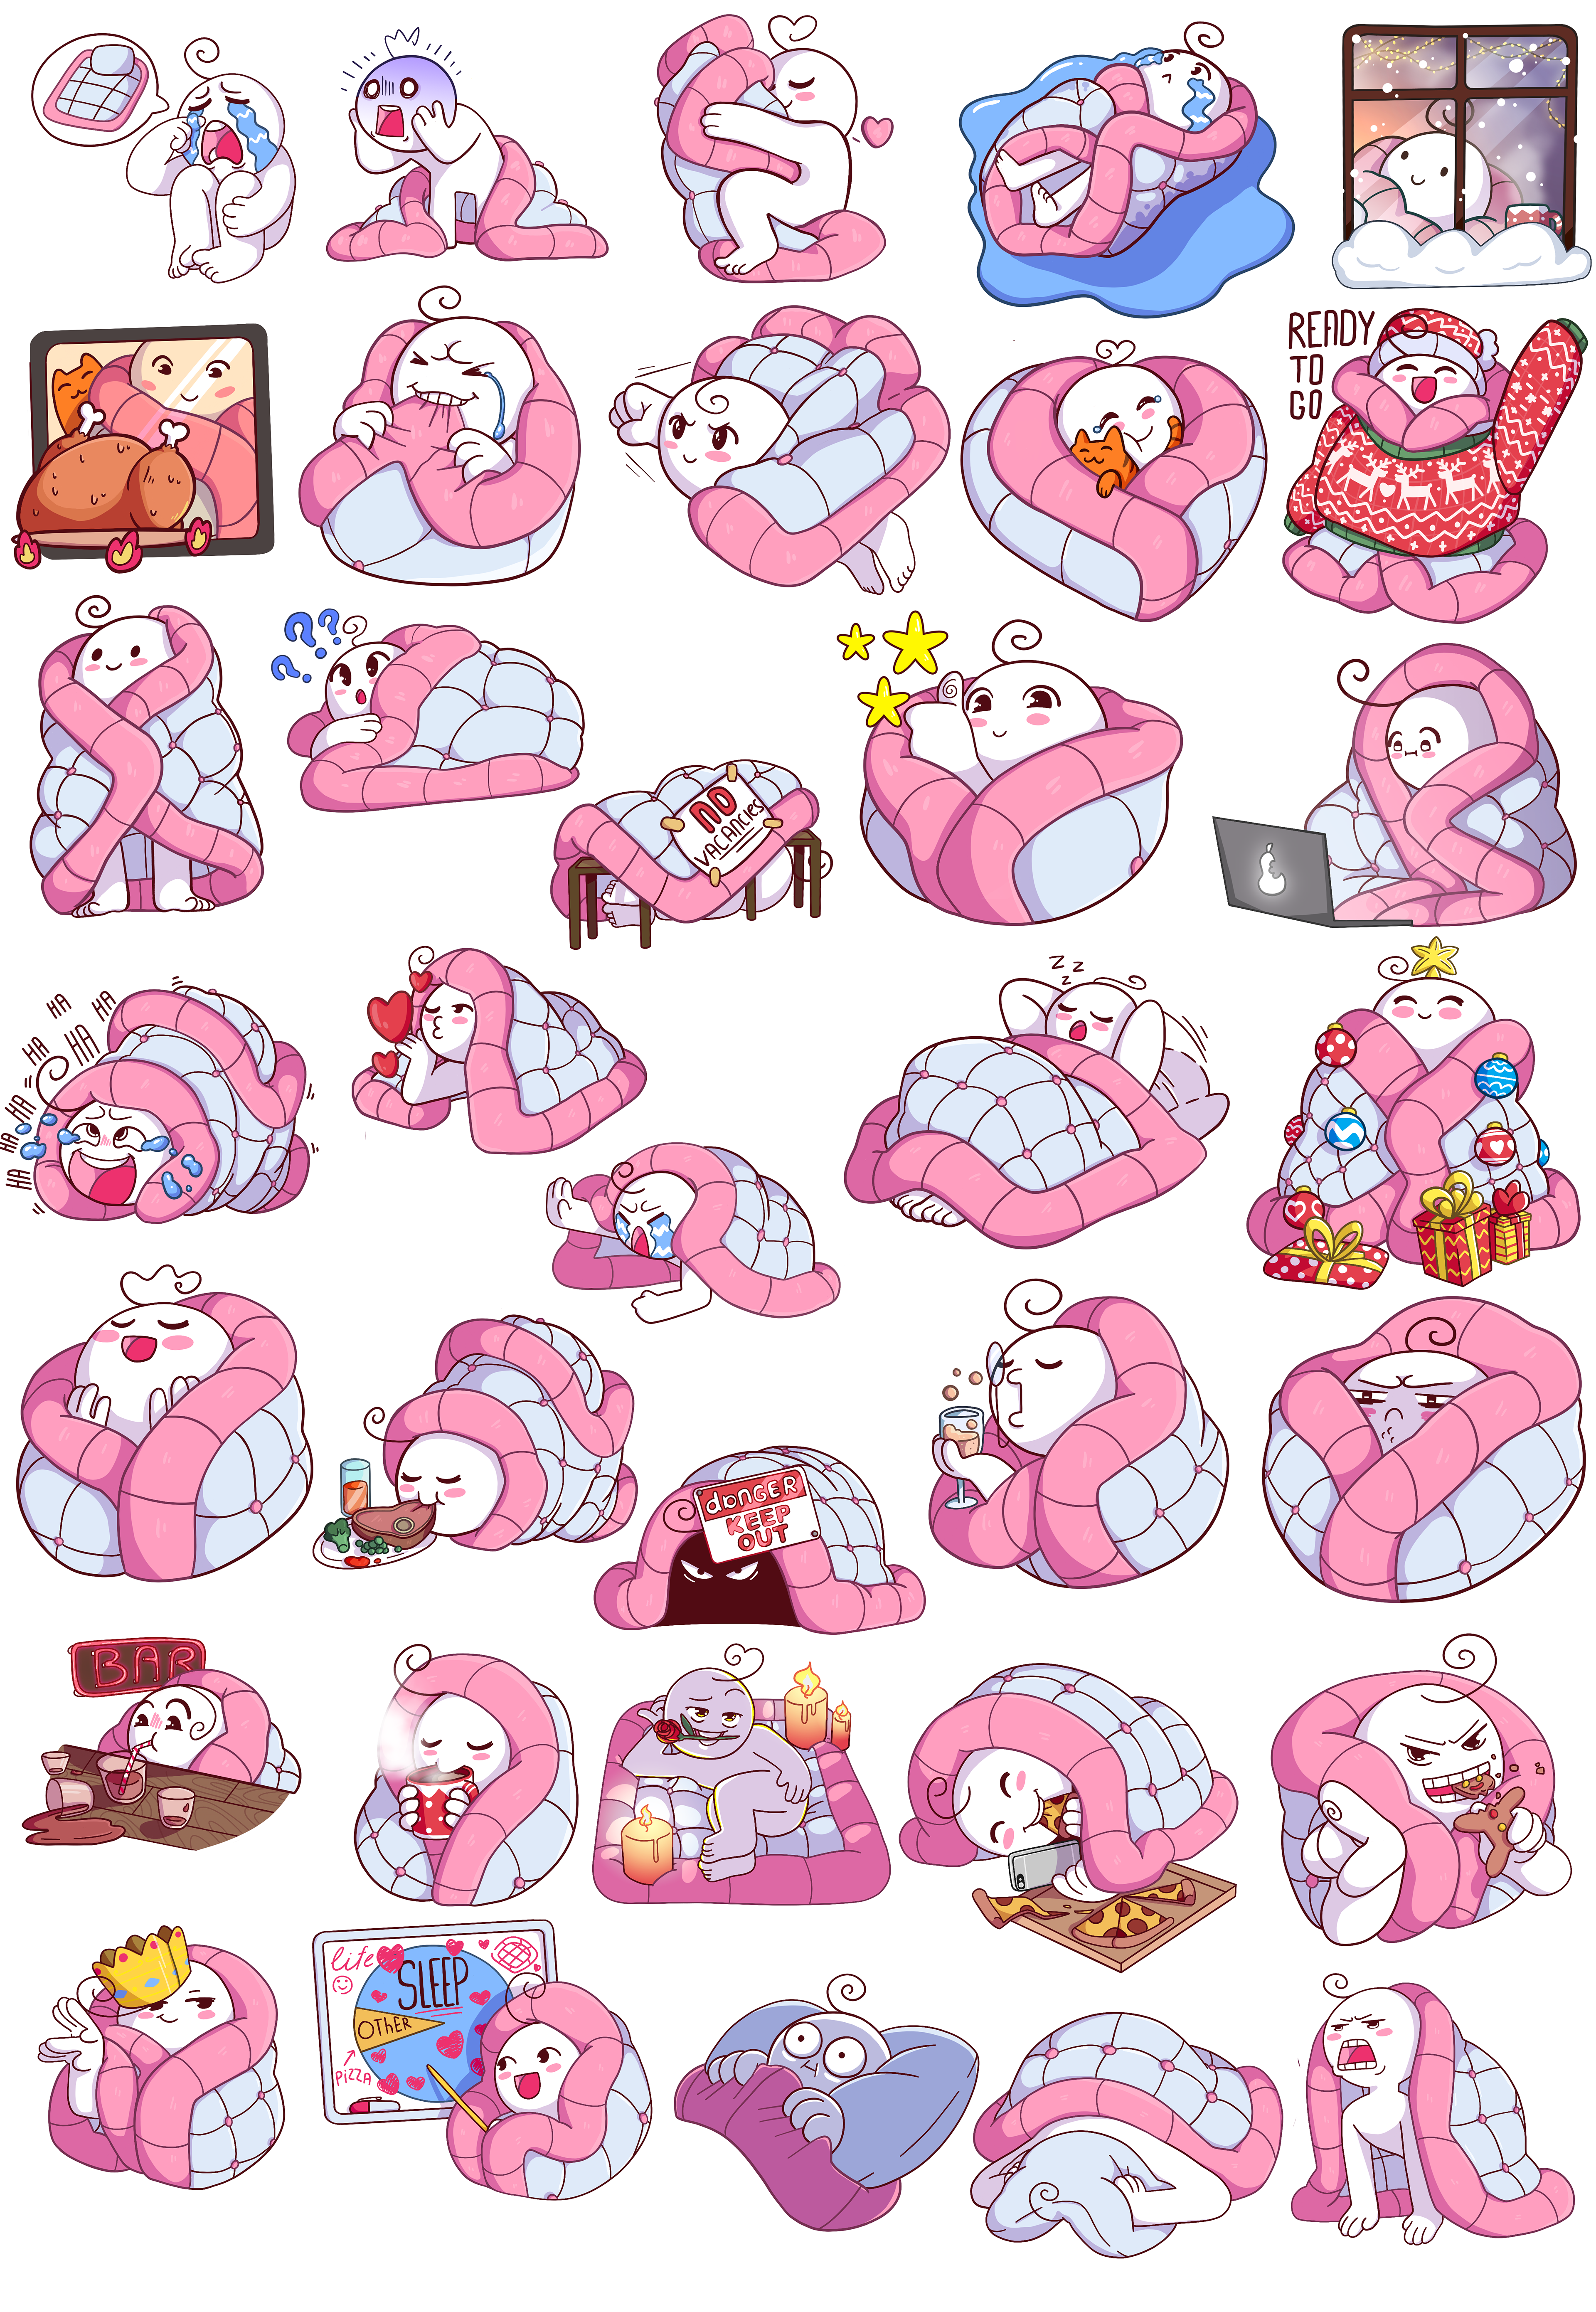 Mr Blanket Telegram Official Stickers 0 Print Pinterest